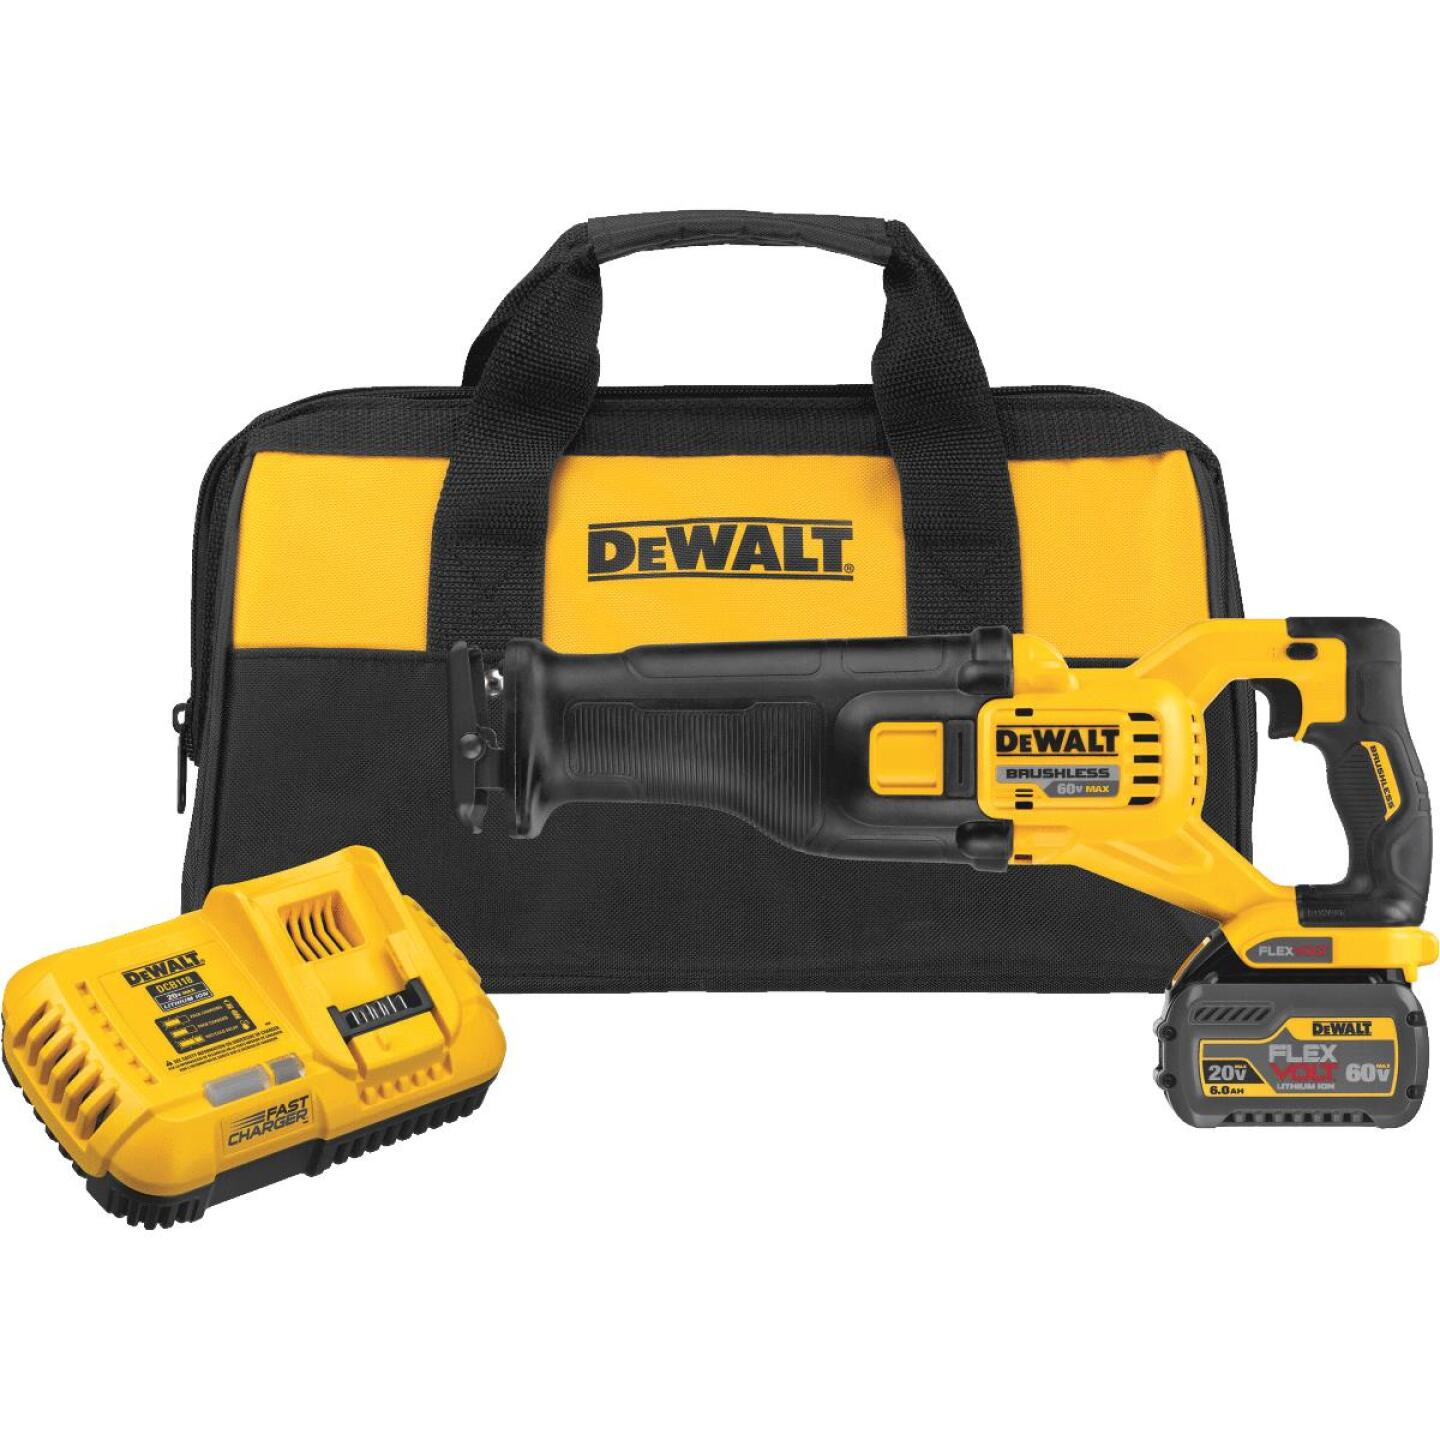 DeWalt Flexvolt 60-Volt MAX Lithium-Ion Brushless Cordless Reciprocating Saw Kit Image 1